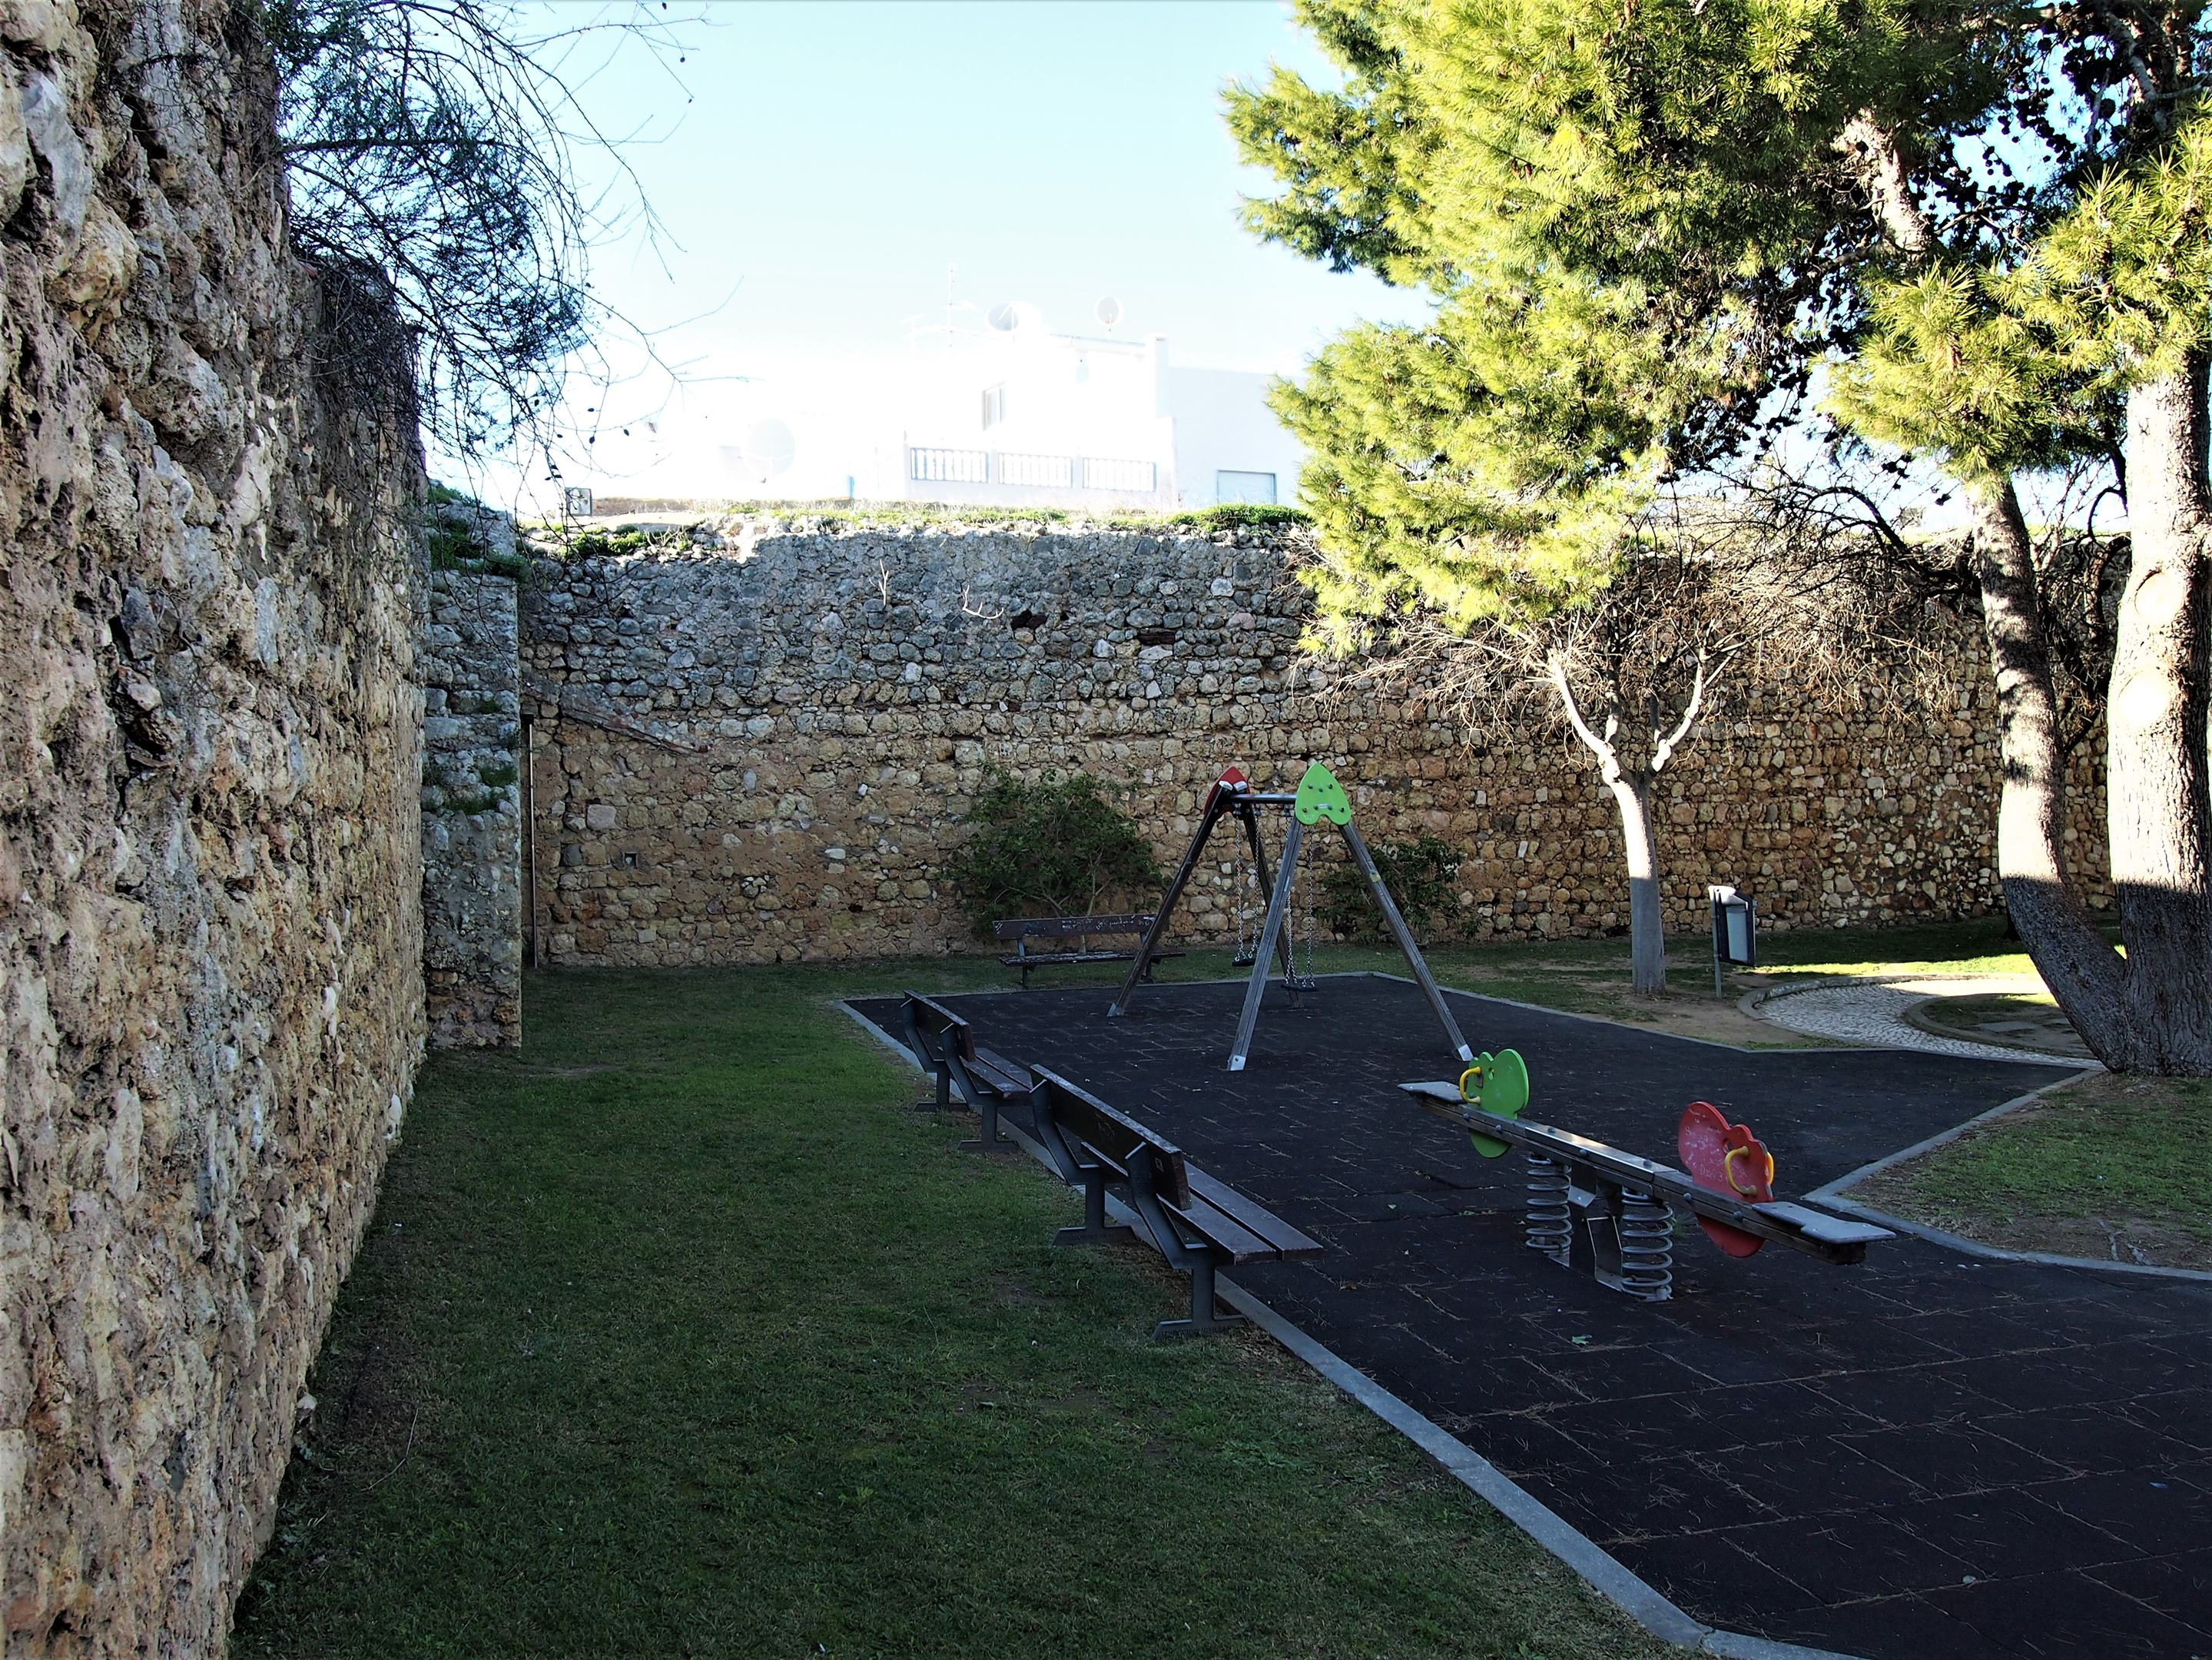 The remains of Alvor Castle - with a children's playground inside the walls